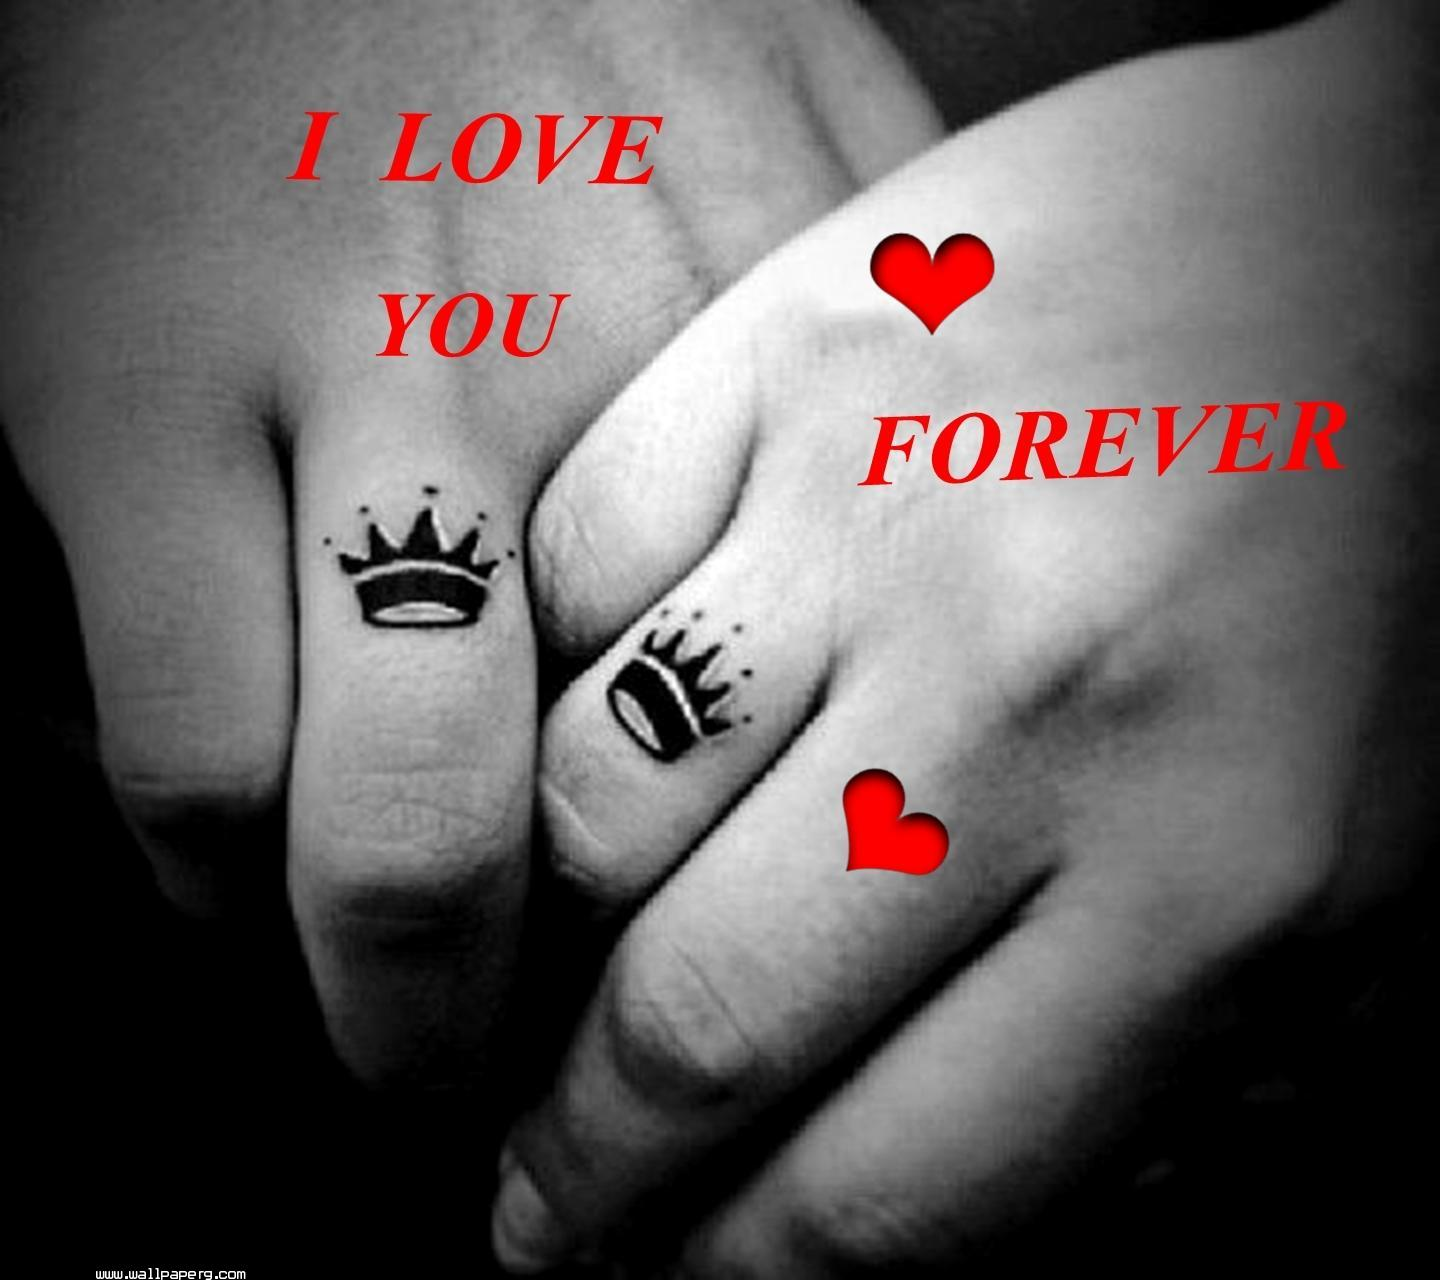 L Love You Wallpapers : Download I love you alwaysi l - Heart touching love quote for your mobile cell phone